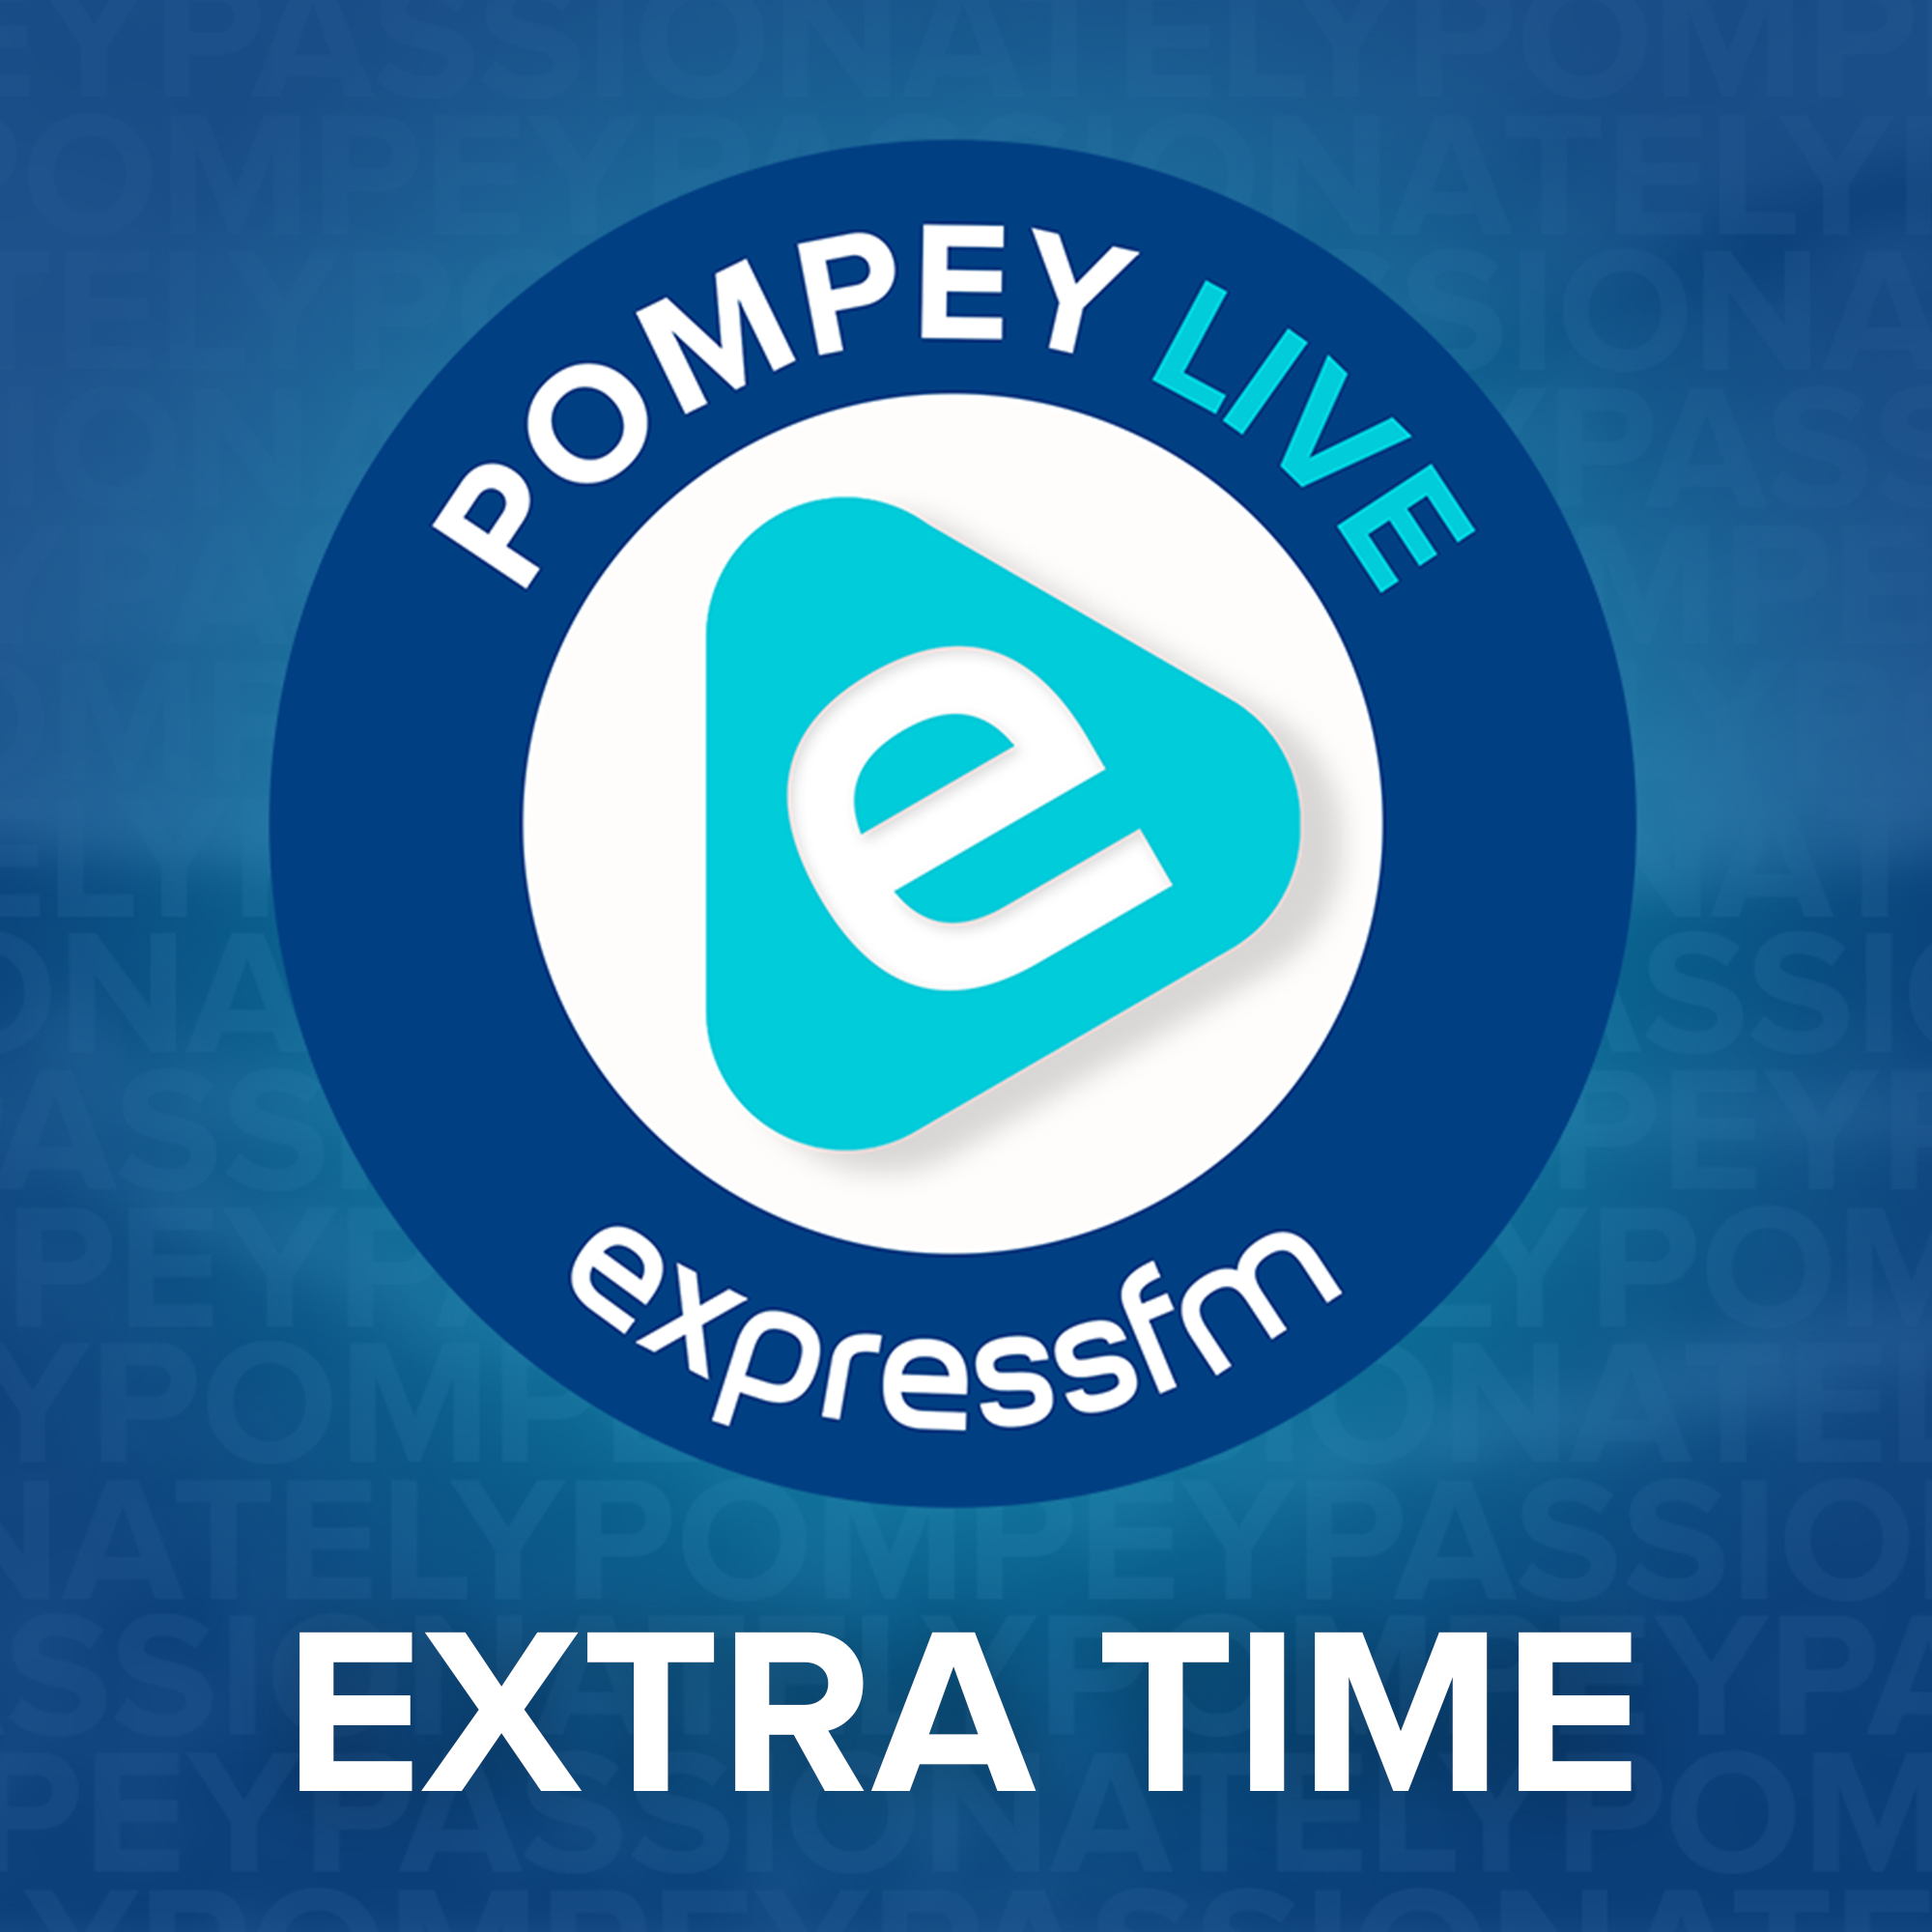 Pompey Live - Extra Time